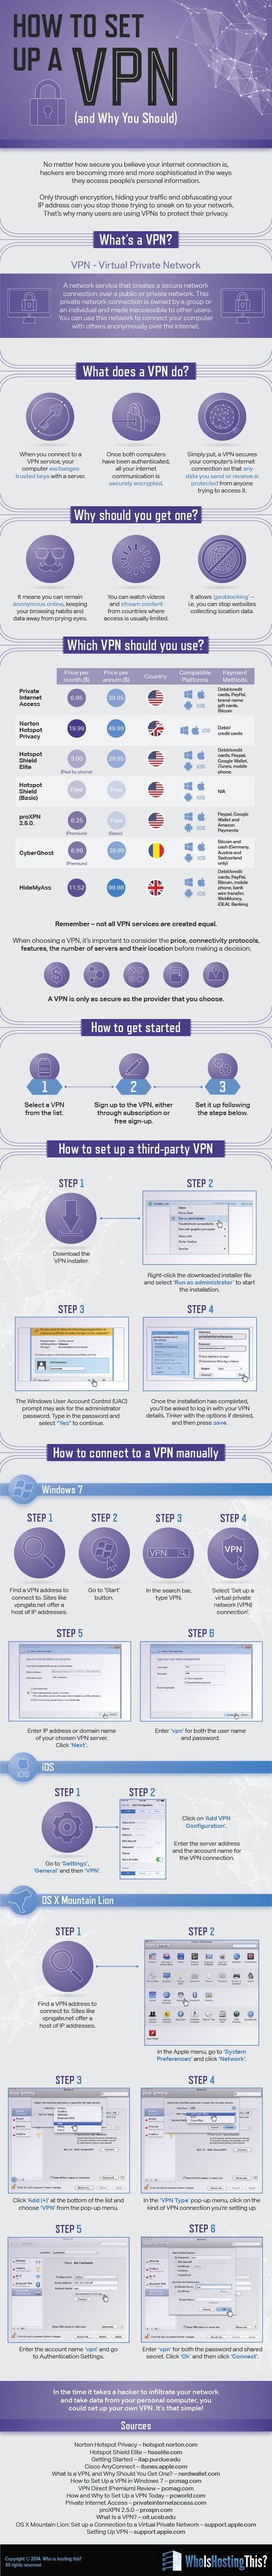 How To Set Up a VPN (and Why You Should) #infographic